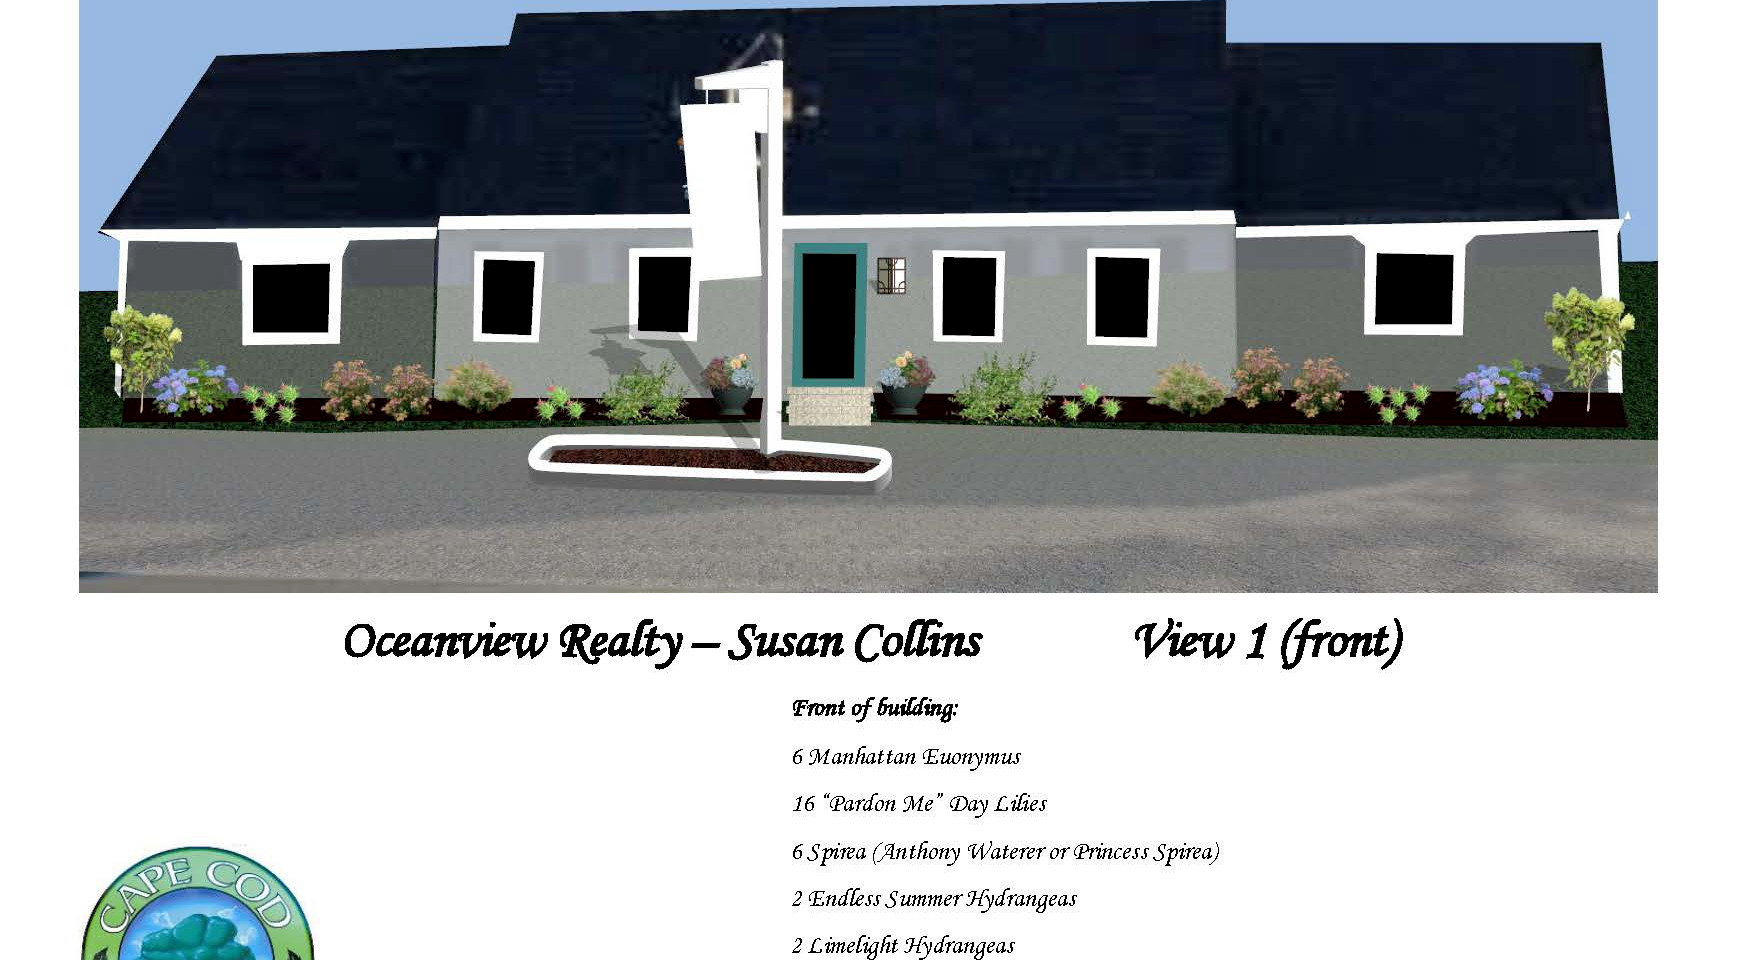 Realty Office Design front view.jpg